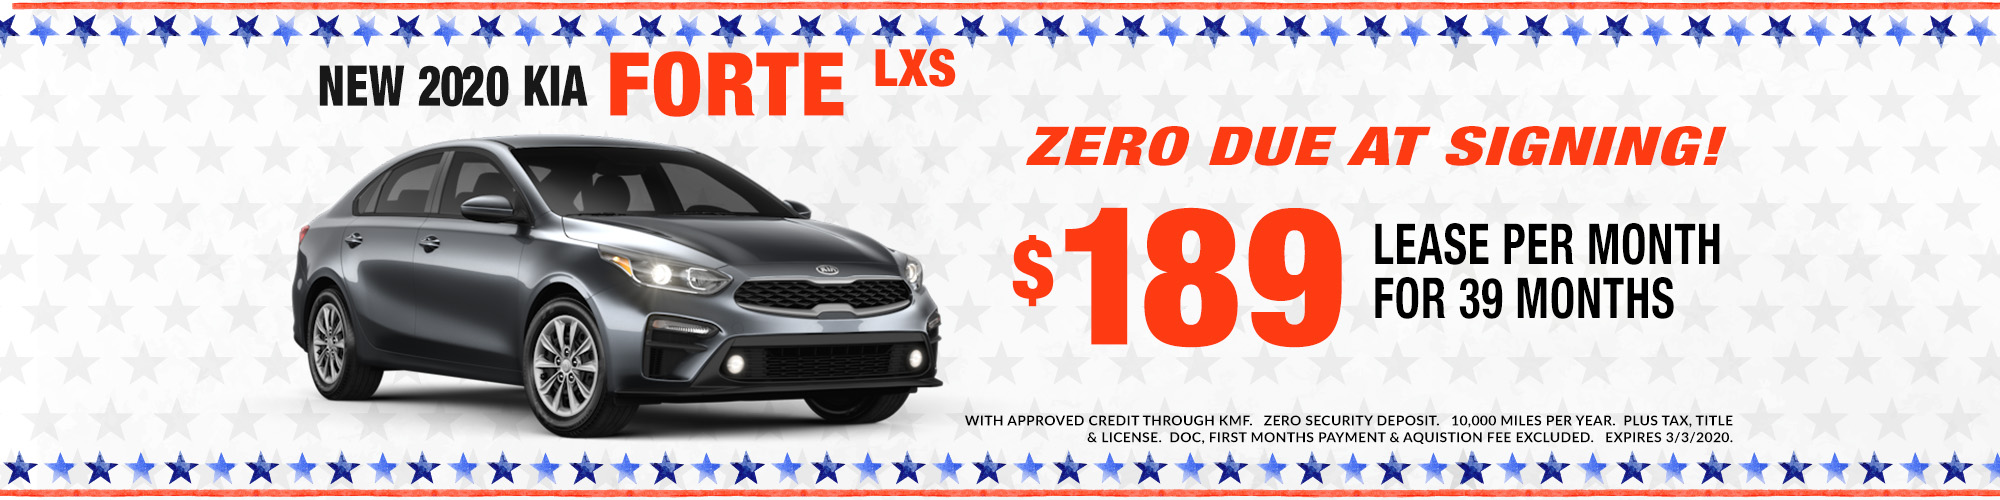 2020 KIA FORTE- LEASE 36 MONTHS- $1999 DUE AT SIGNING- JUST $139 PER MONTH